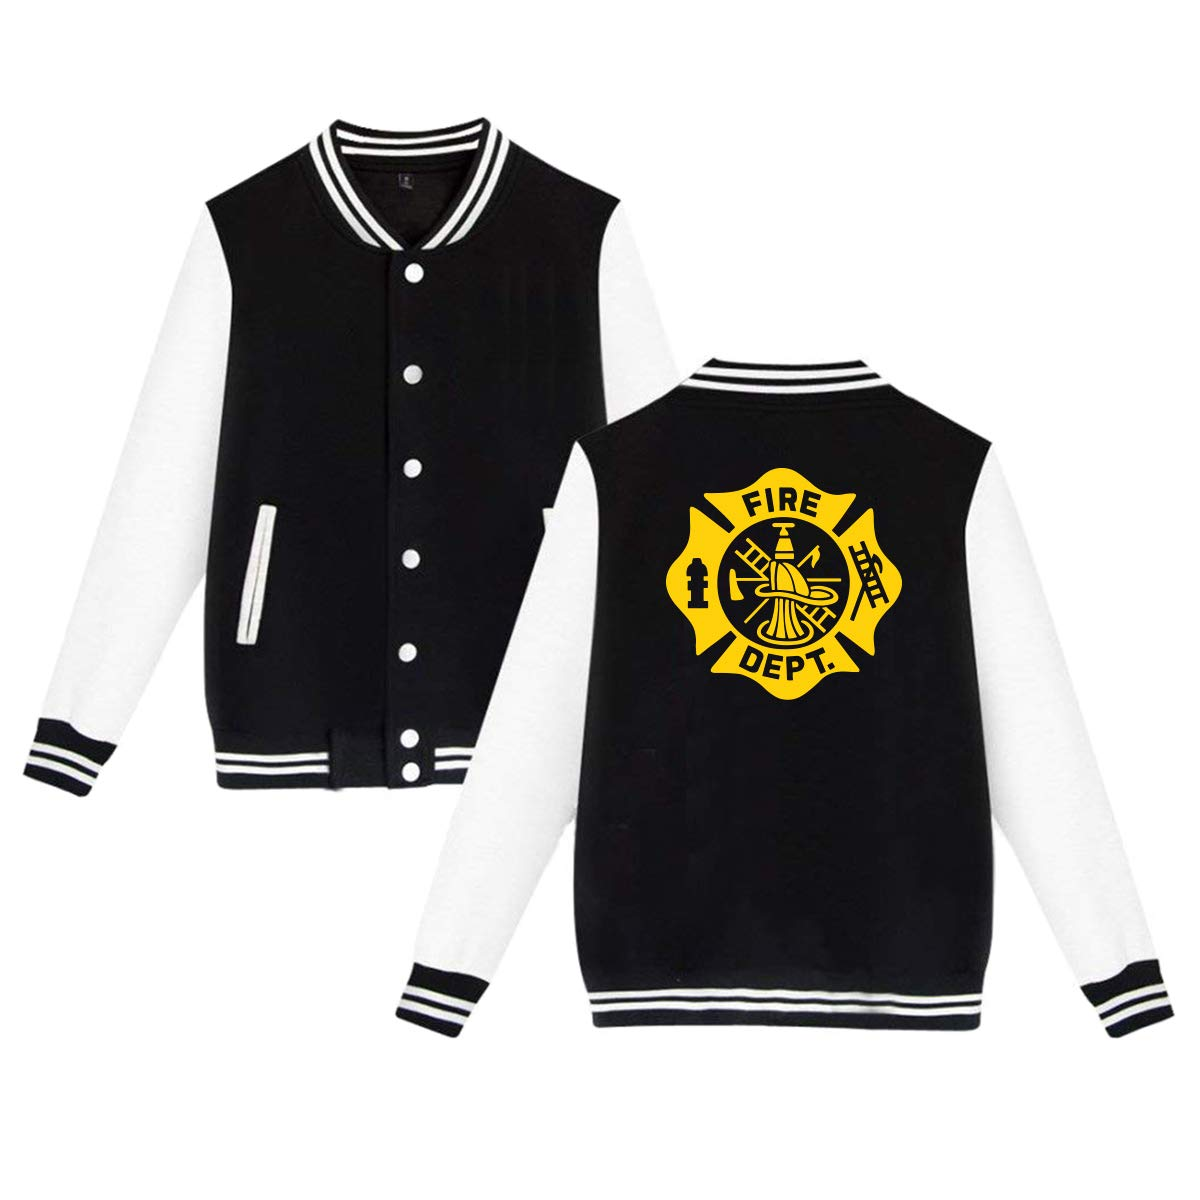 MF SFLK Firefighter Black and Gold Unisex Baseball Jacket Uniform Sweater Coat Sweatshirt